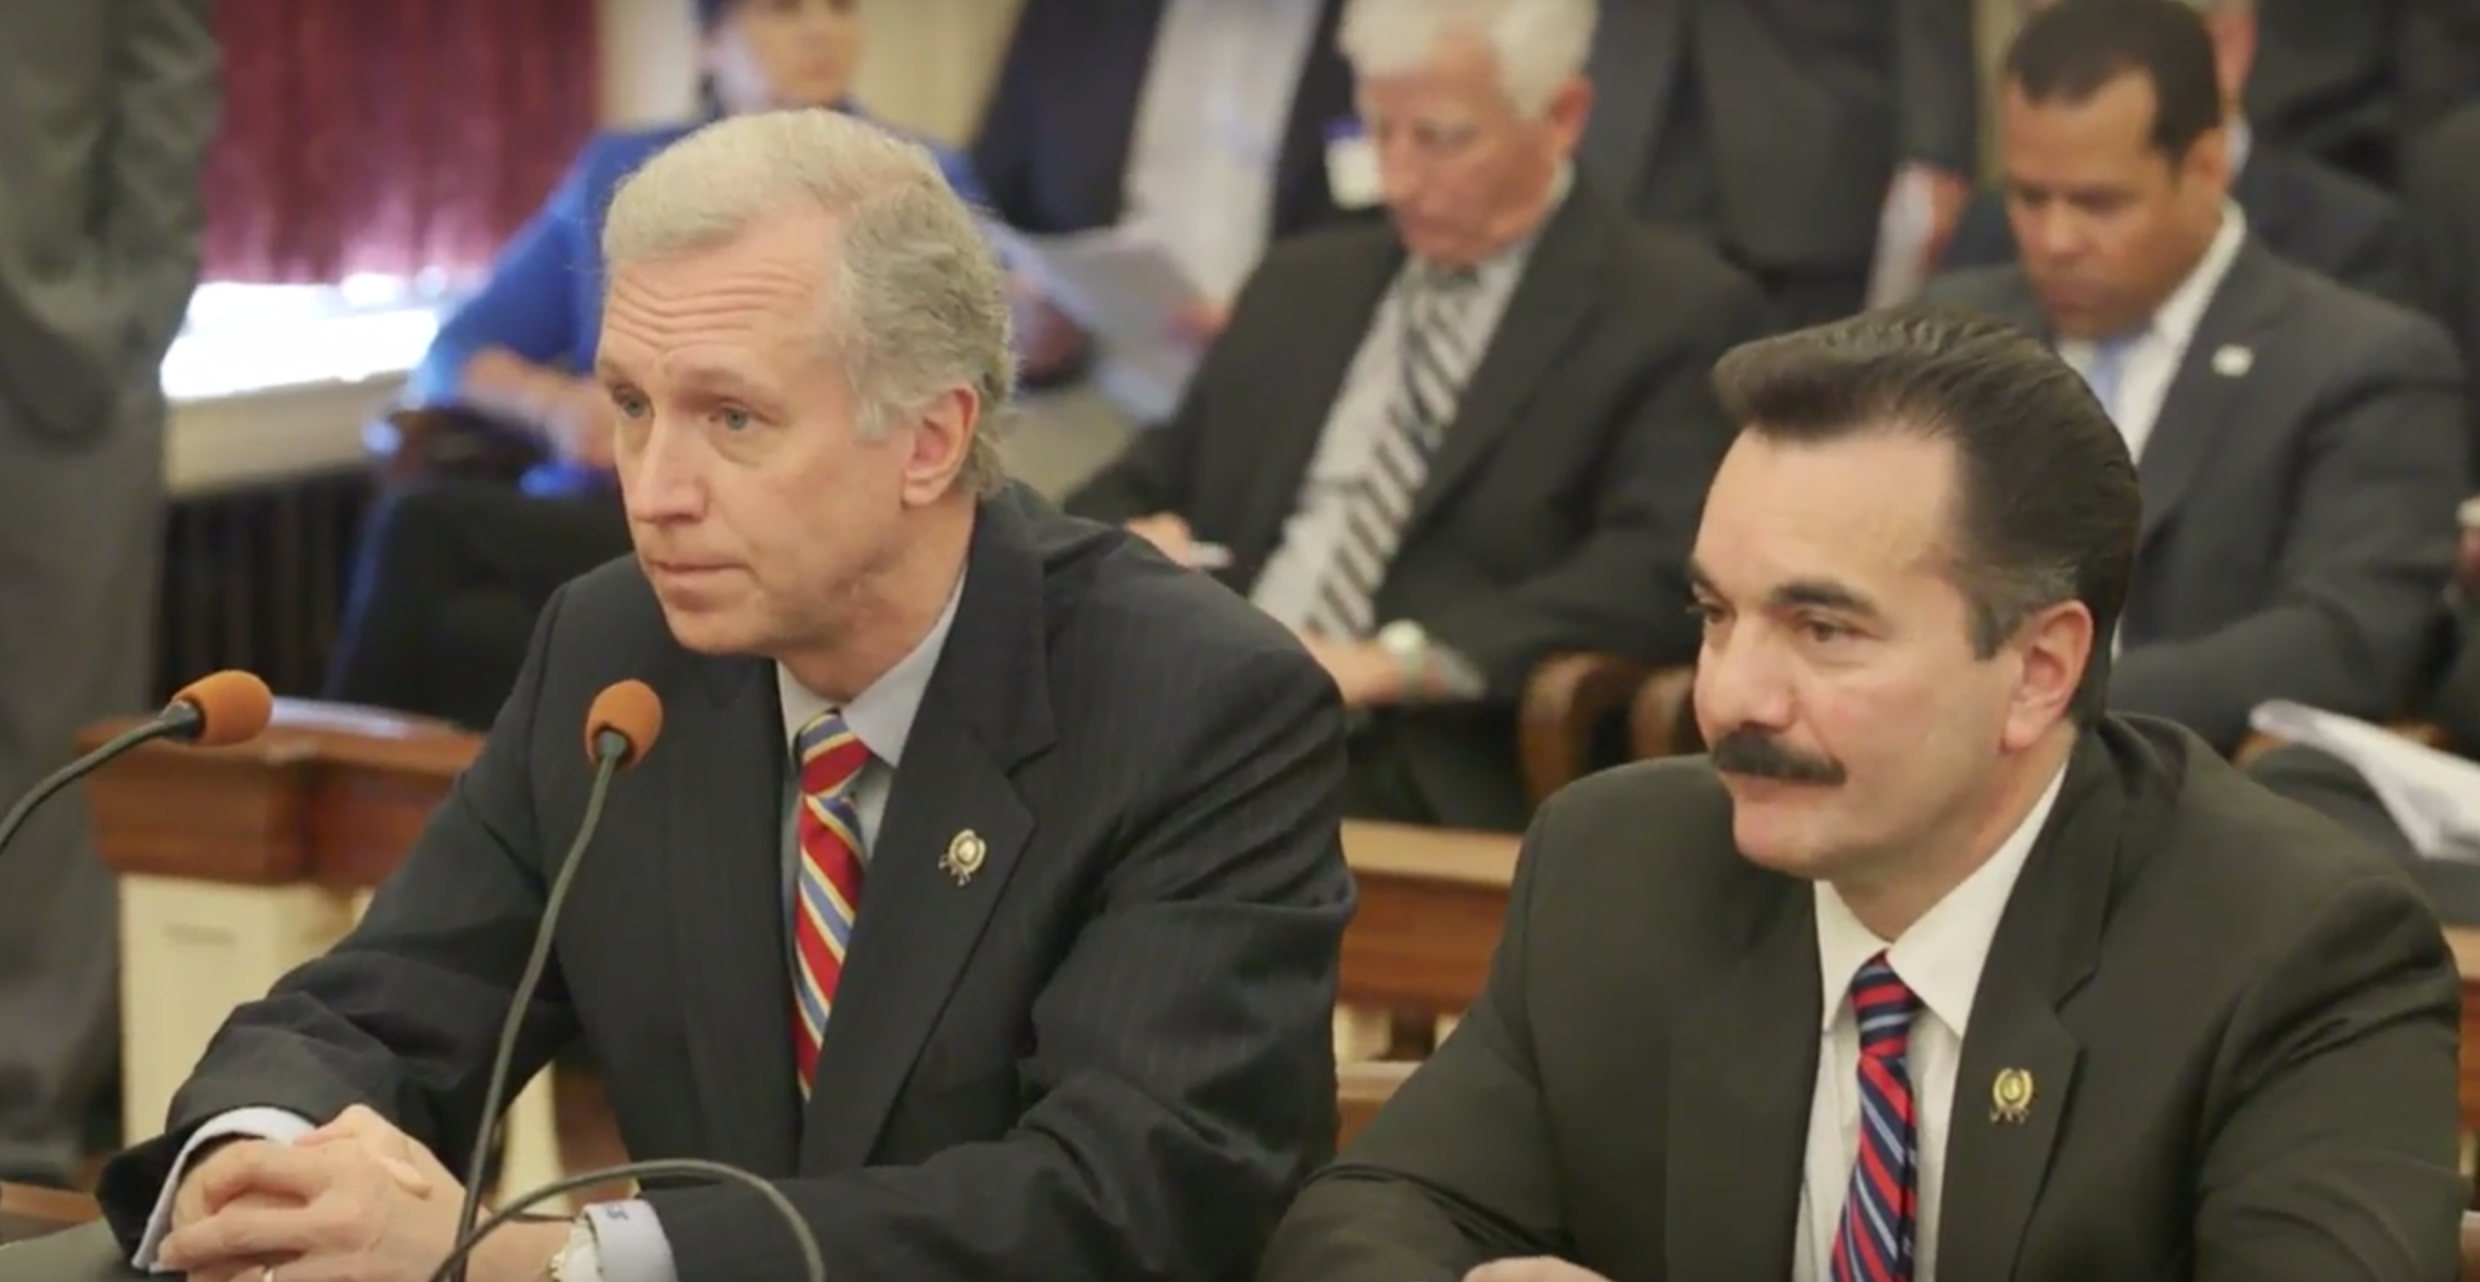 Assembly Speaker Vince Prieto (right) and Assemblyman John Wisniewski (left).